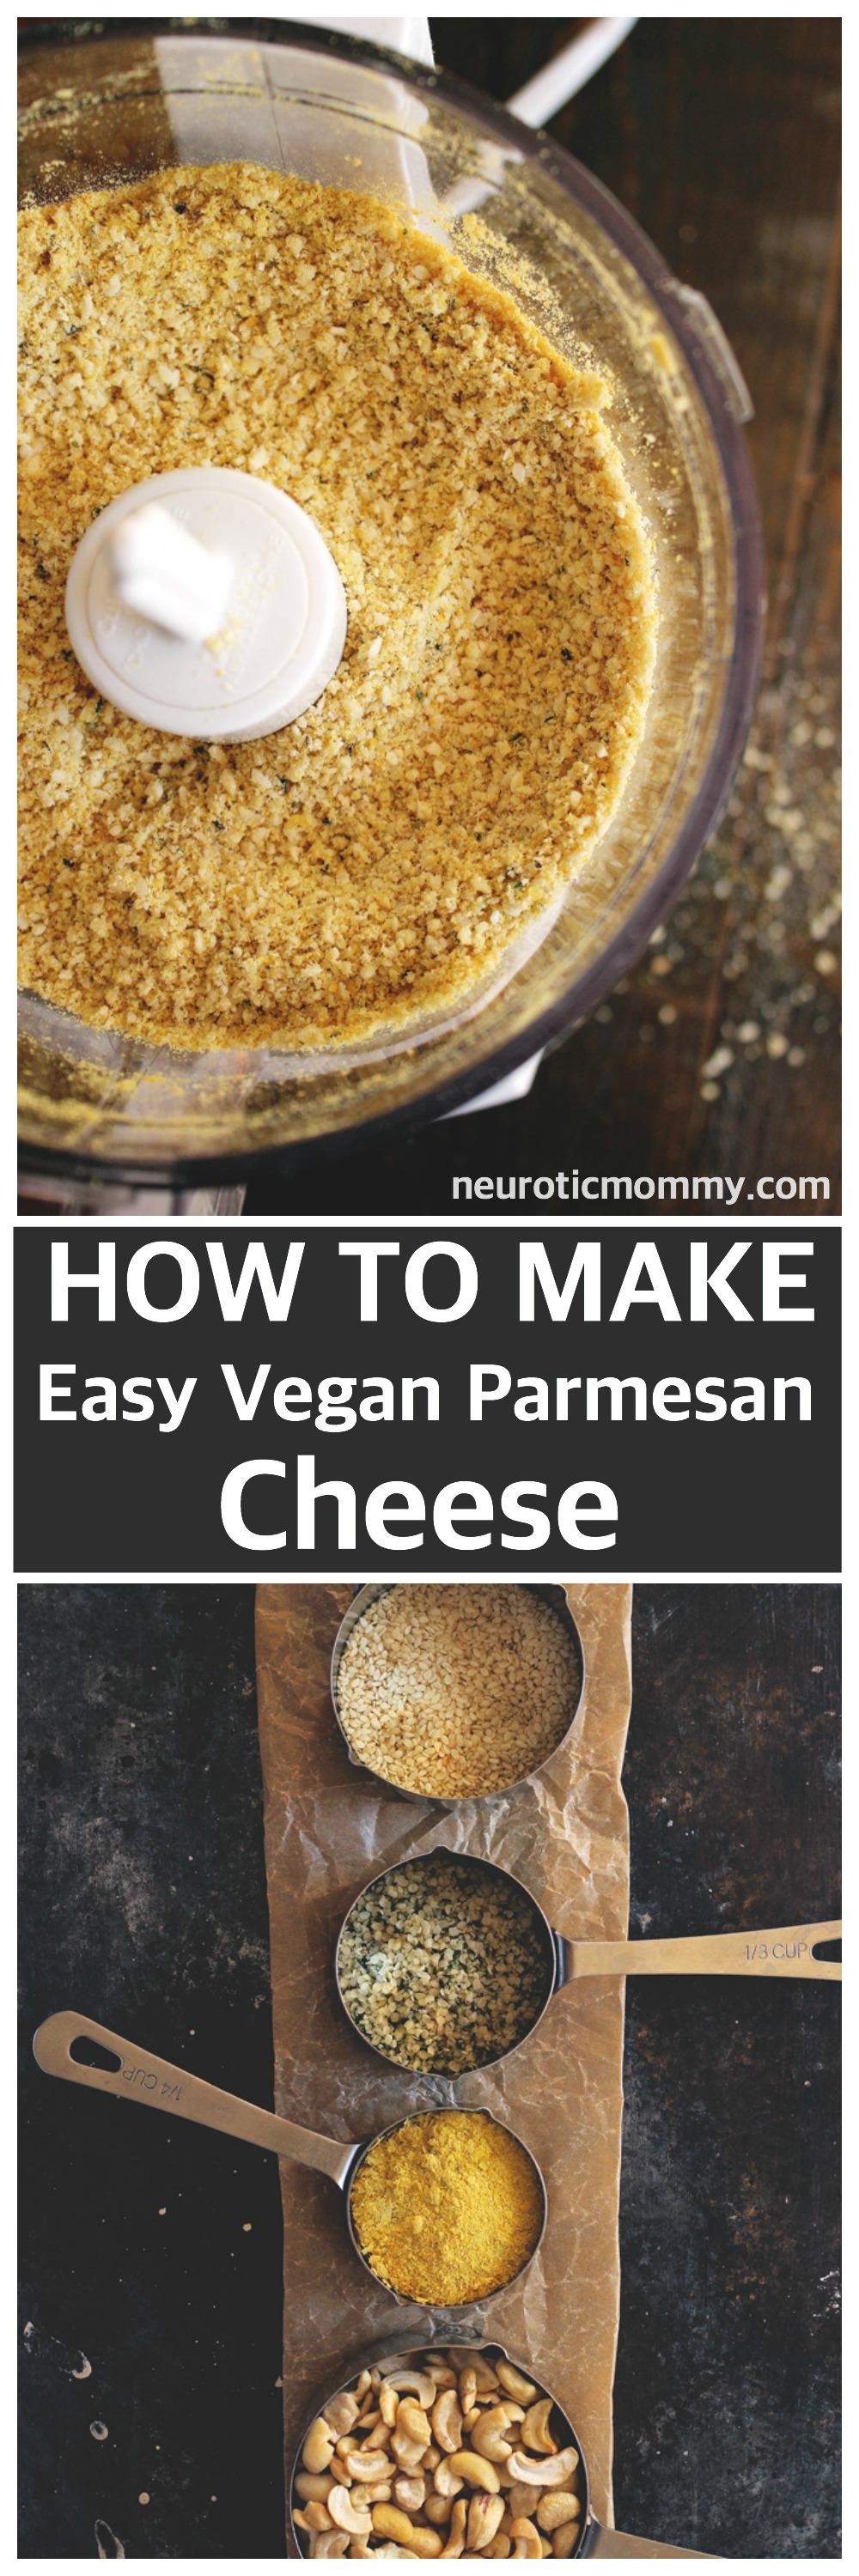 How To Make Easy Vegan Parmesan Cheese - A simple way to make a classic, traditional fave! NeuroticMommy.com #vegan #healthy #howto